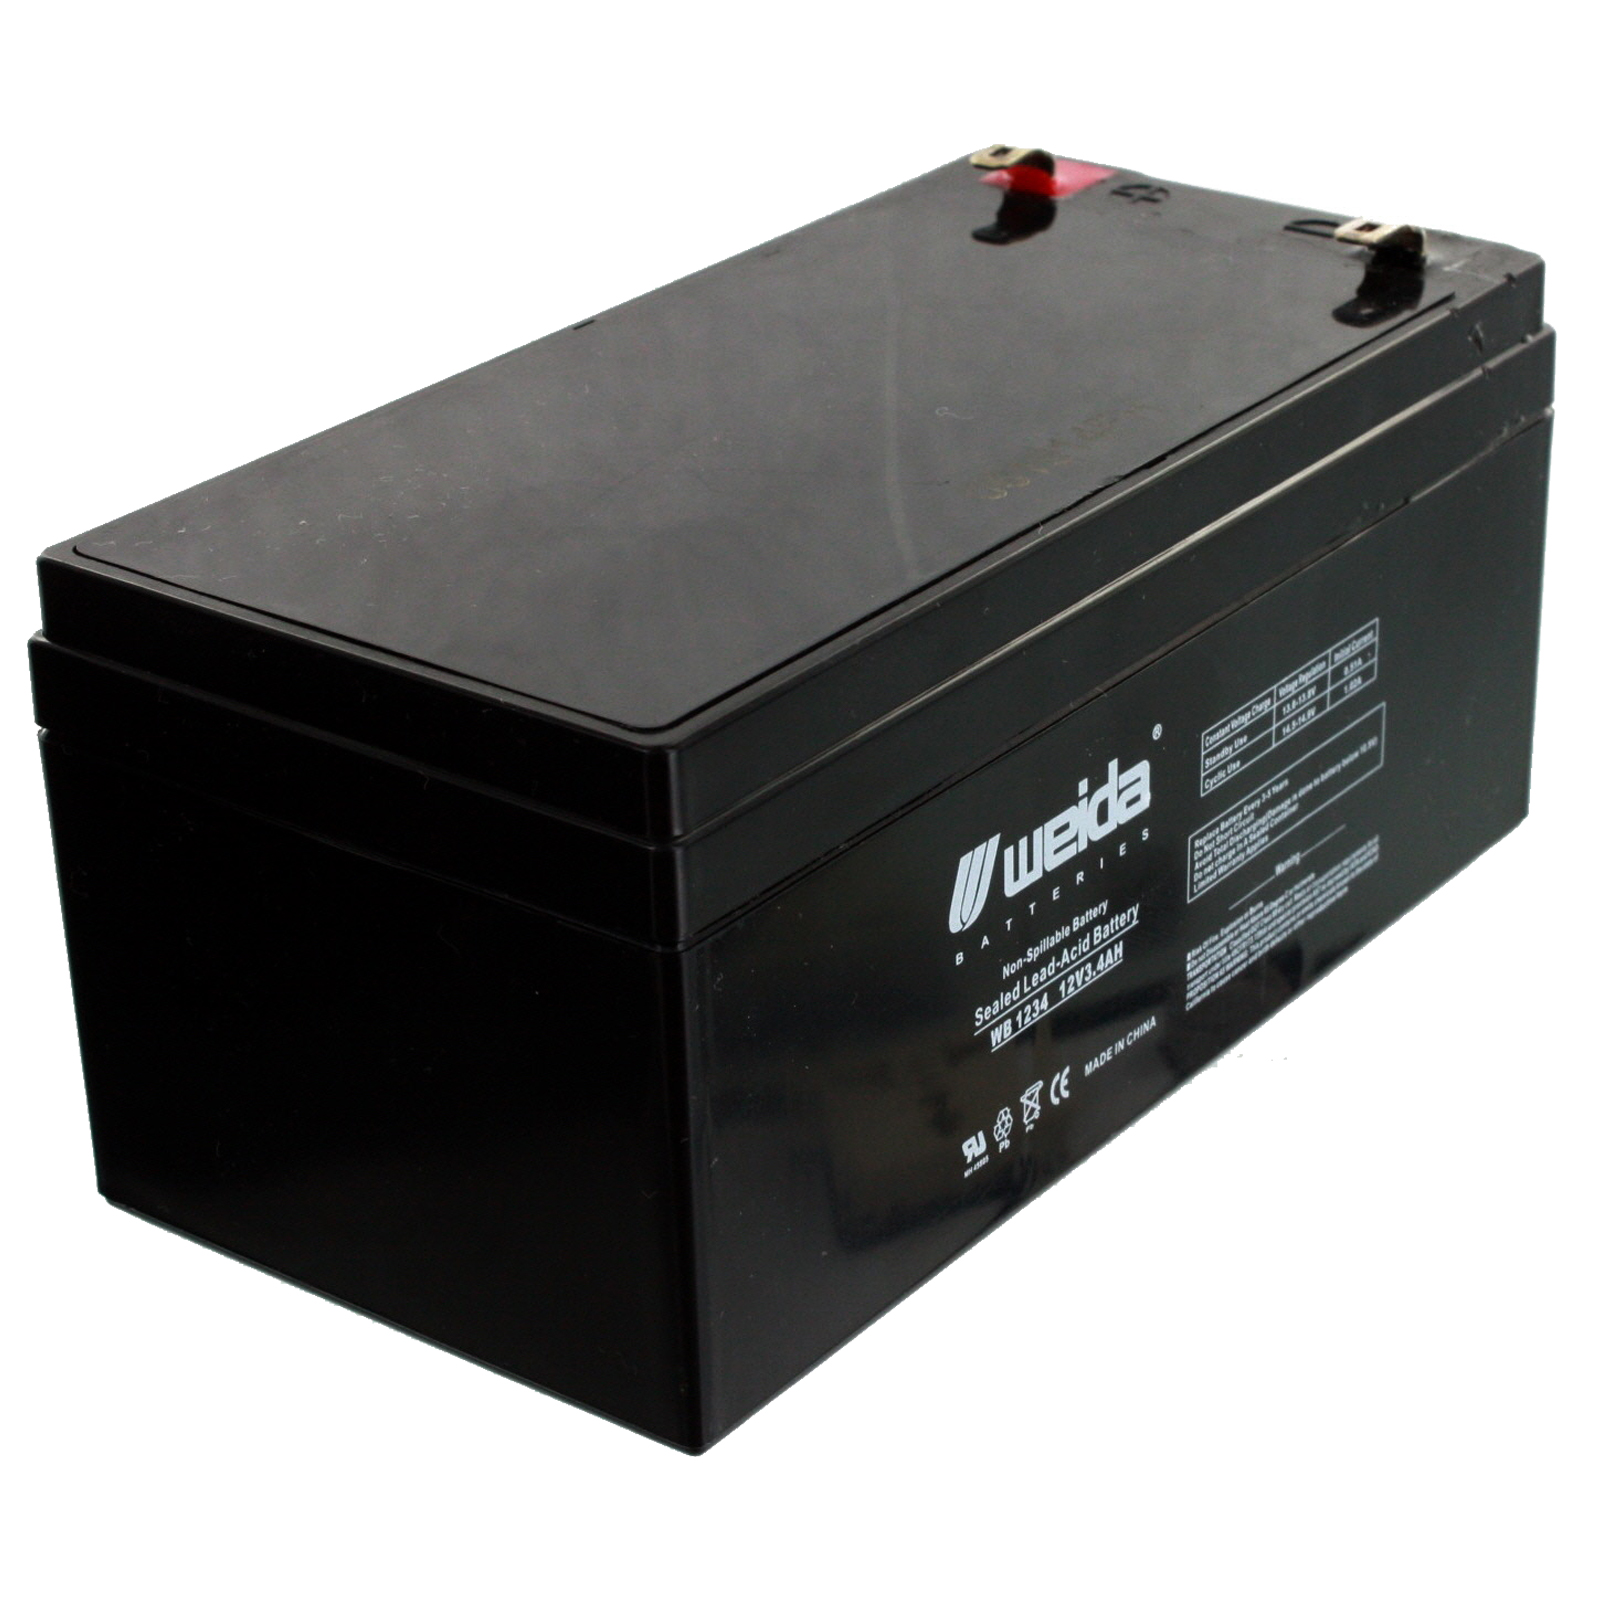 new 12v 3 4ah sla battery wb1234 for ub1234 ps1230 np3 4. Black Bedroom Furniture Sets. Home Design Ideas